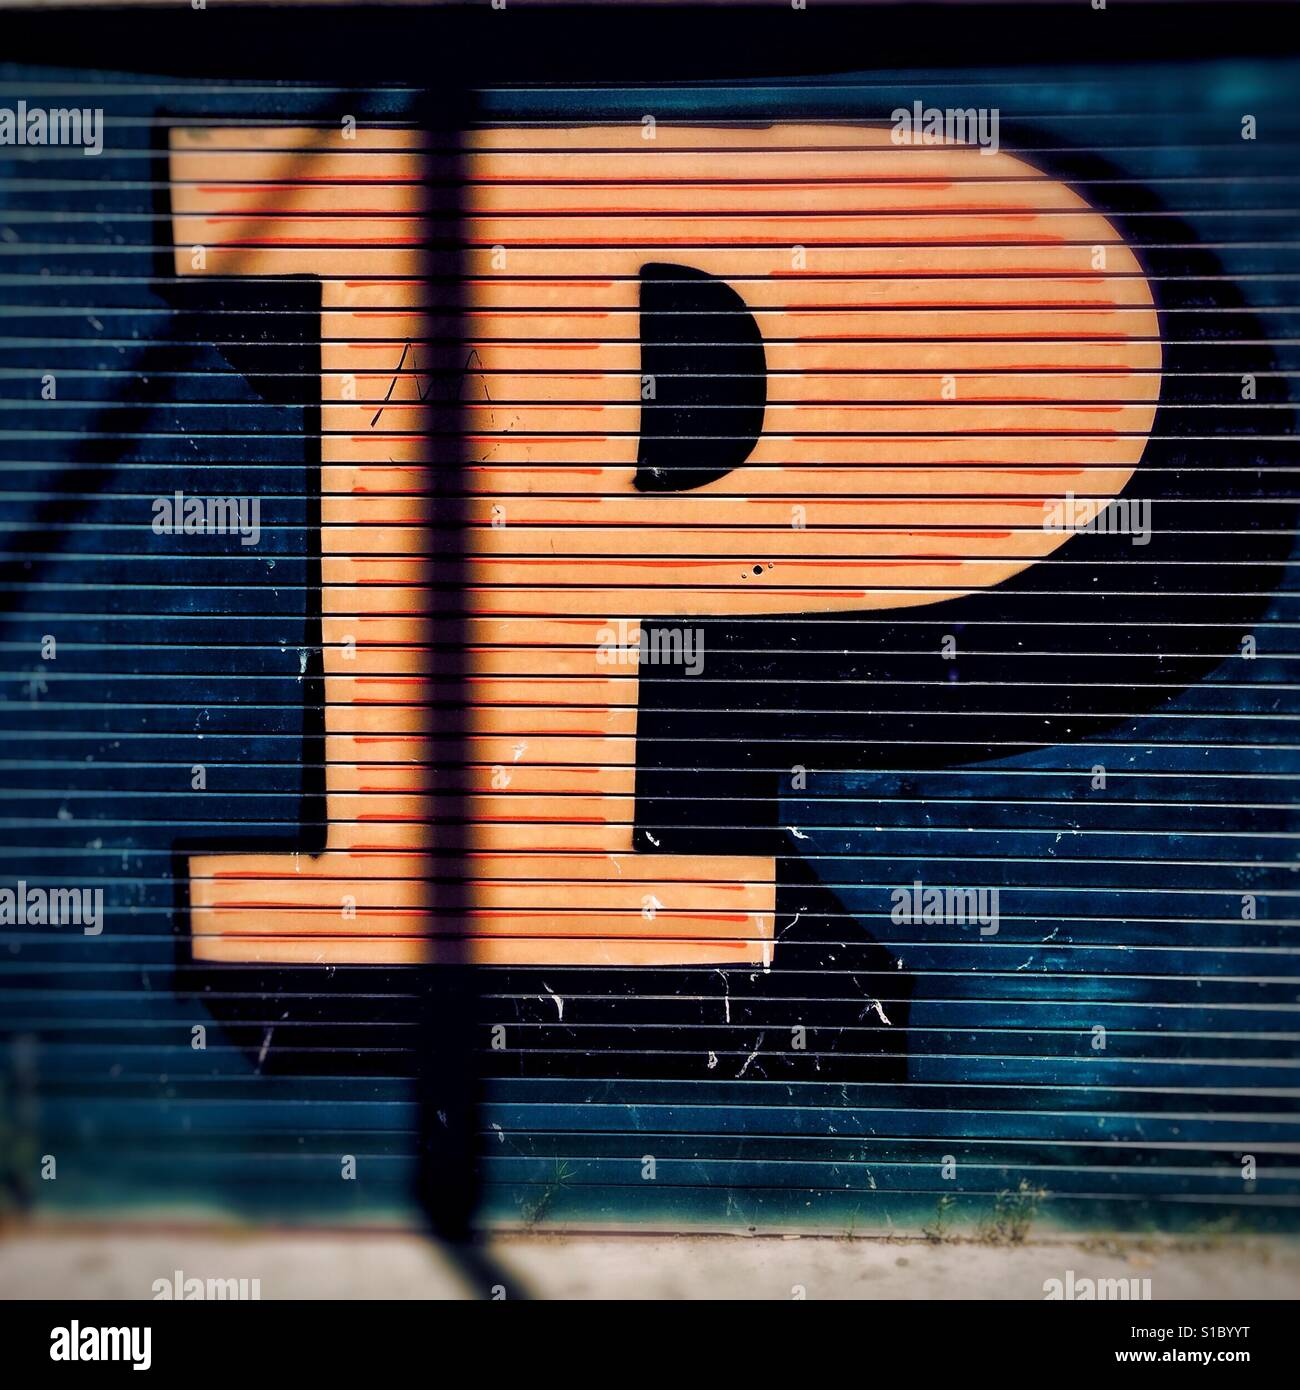 Detail from graffiti art by street artist Ben Eine, showing a colourful, stylised letter P painted onto shutters. - Stock Image